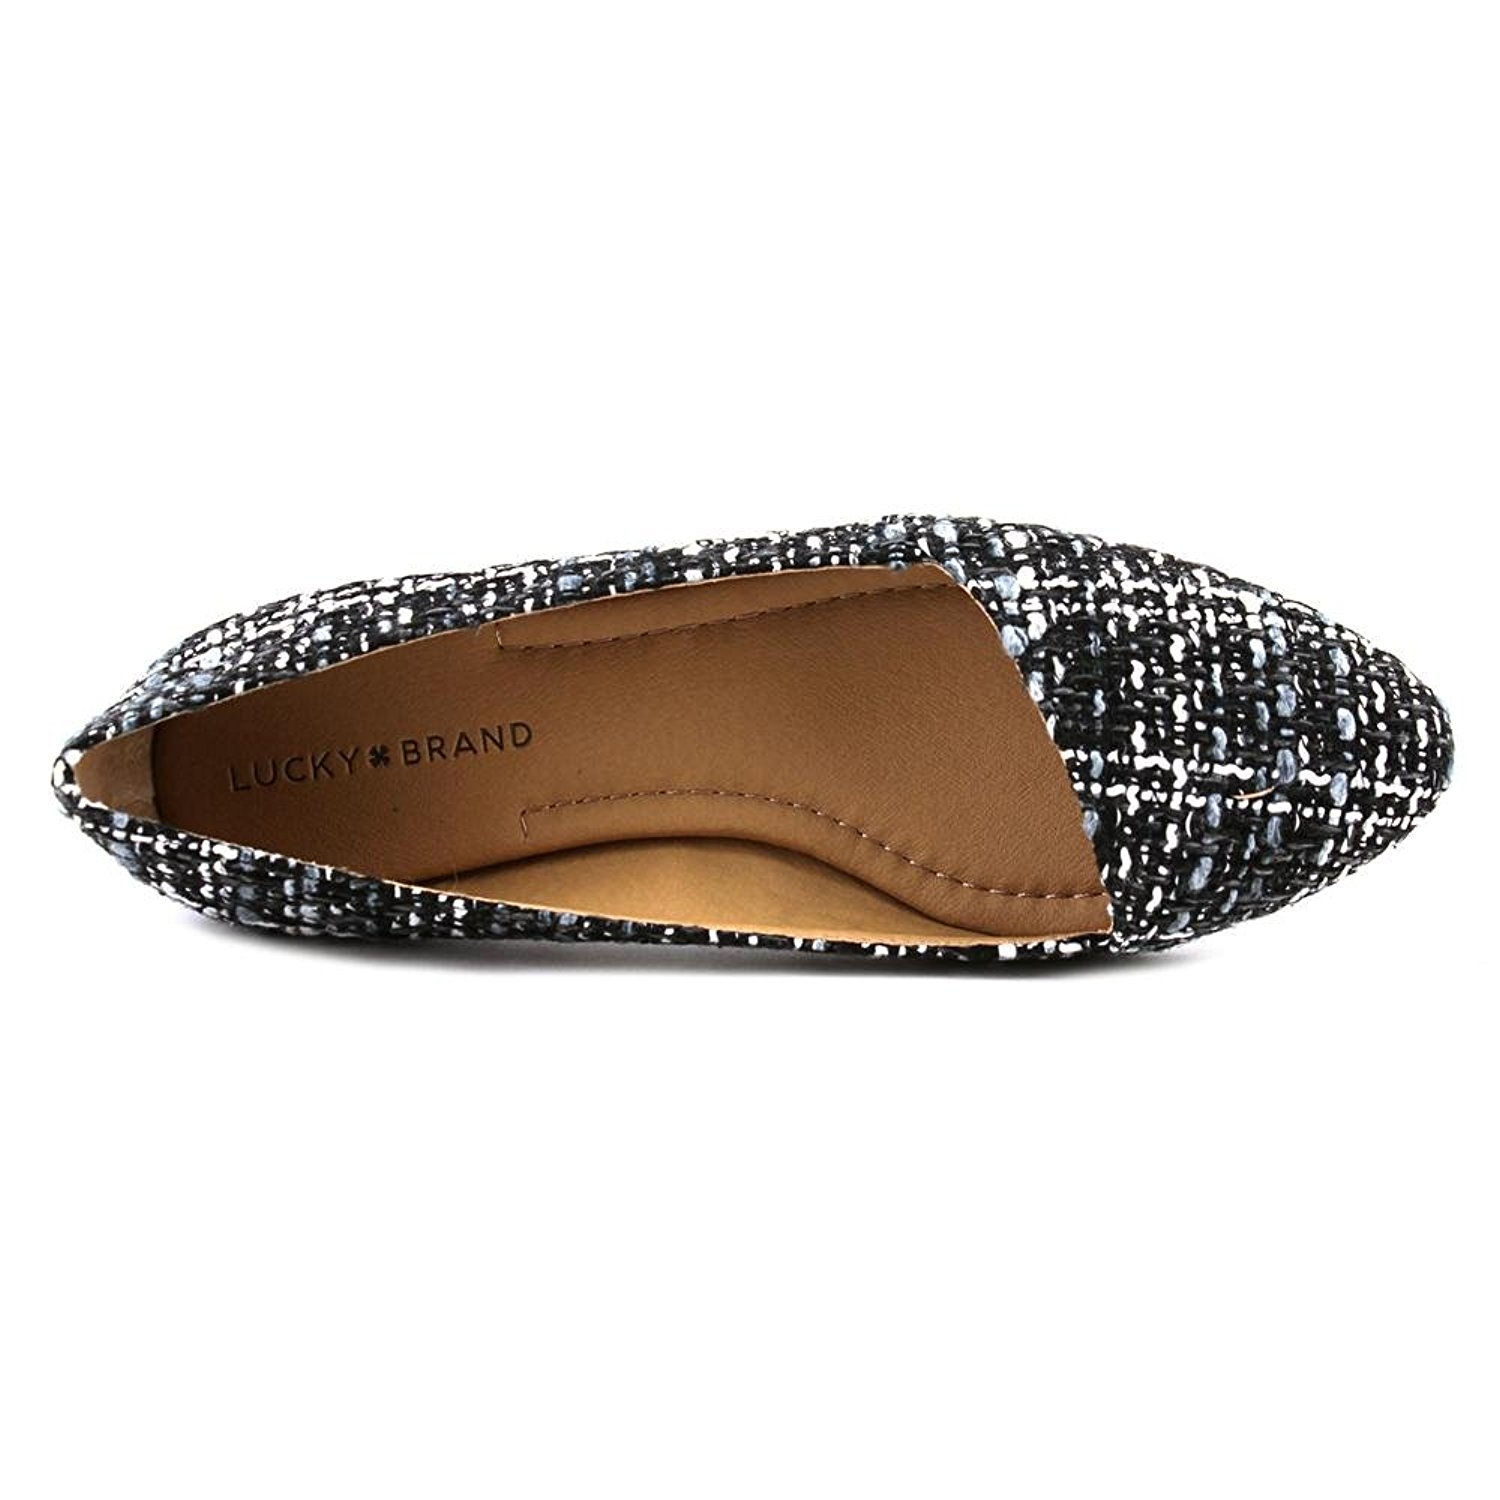 Lucky Women's Archh Ballet Flat Economical, stylish, and eye-catching shoes